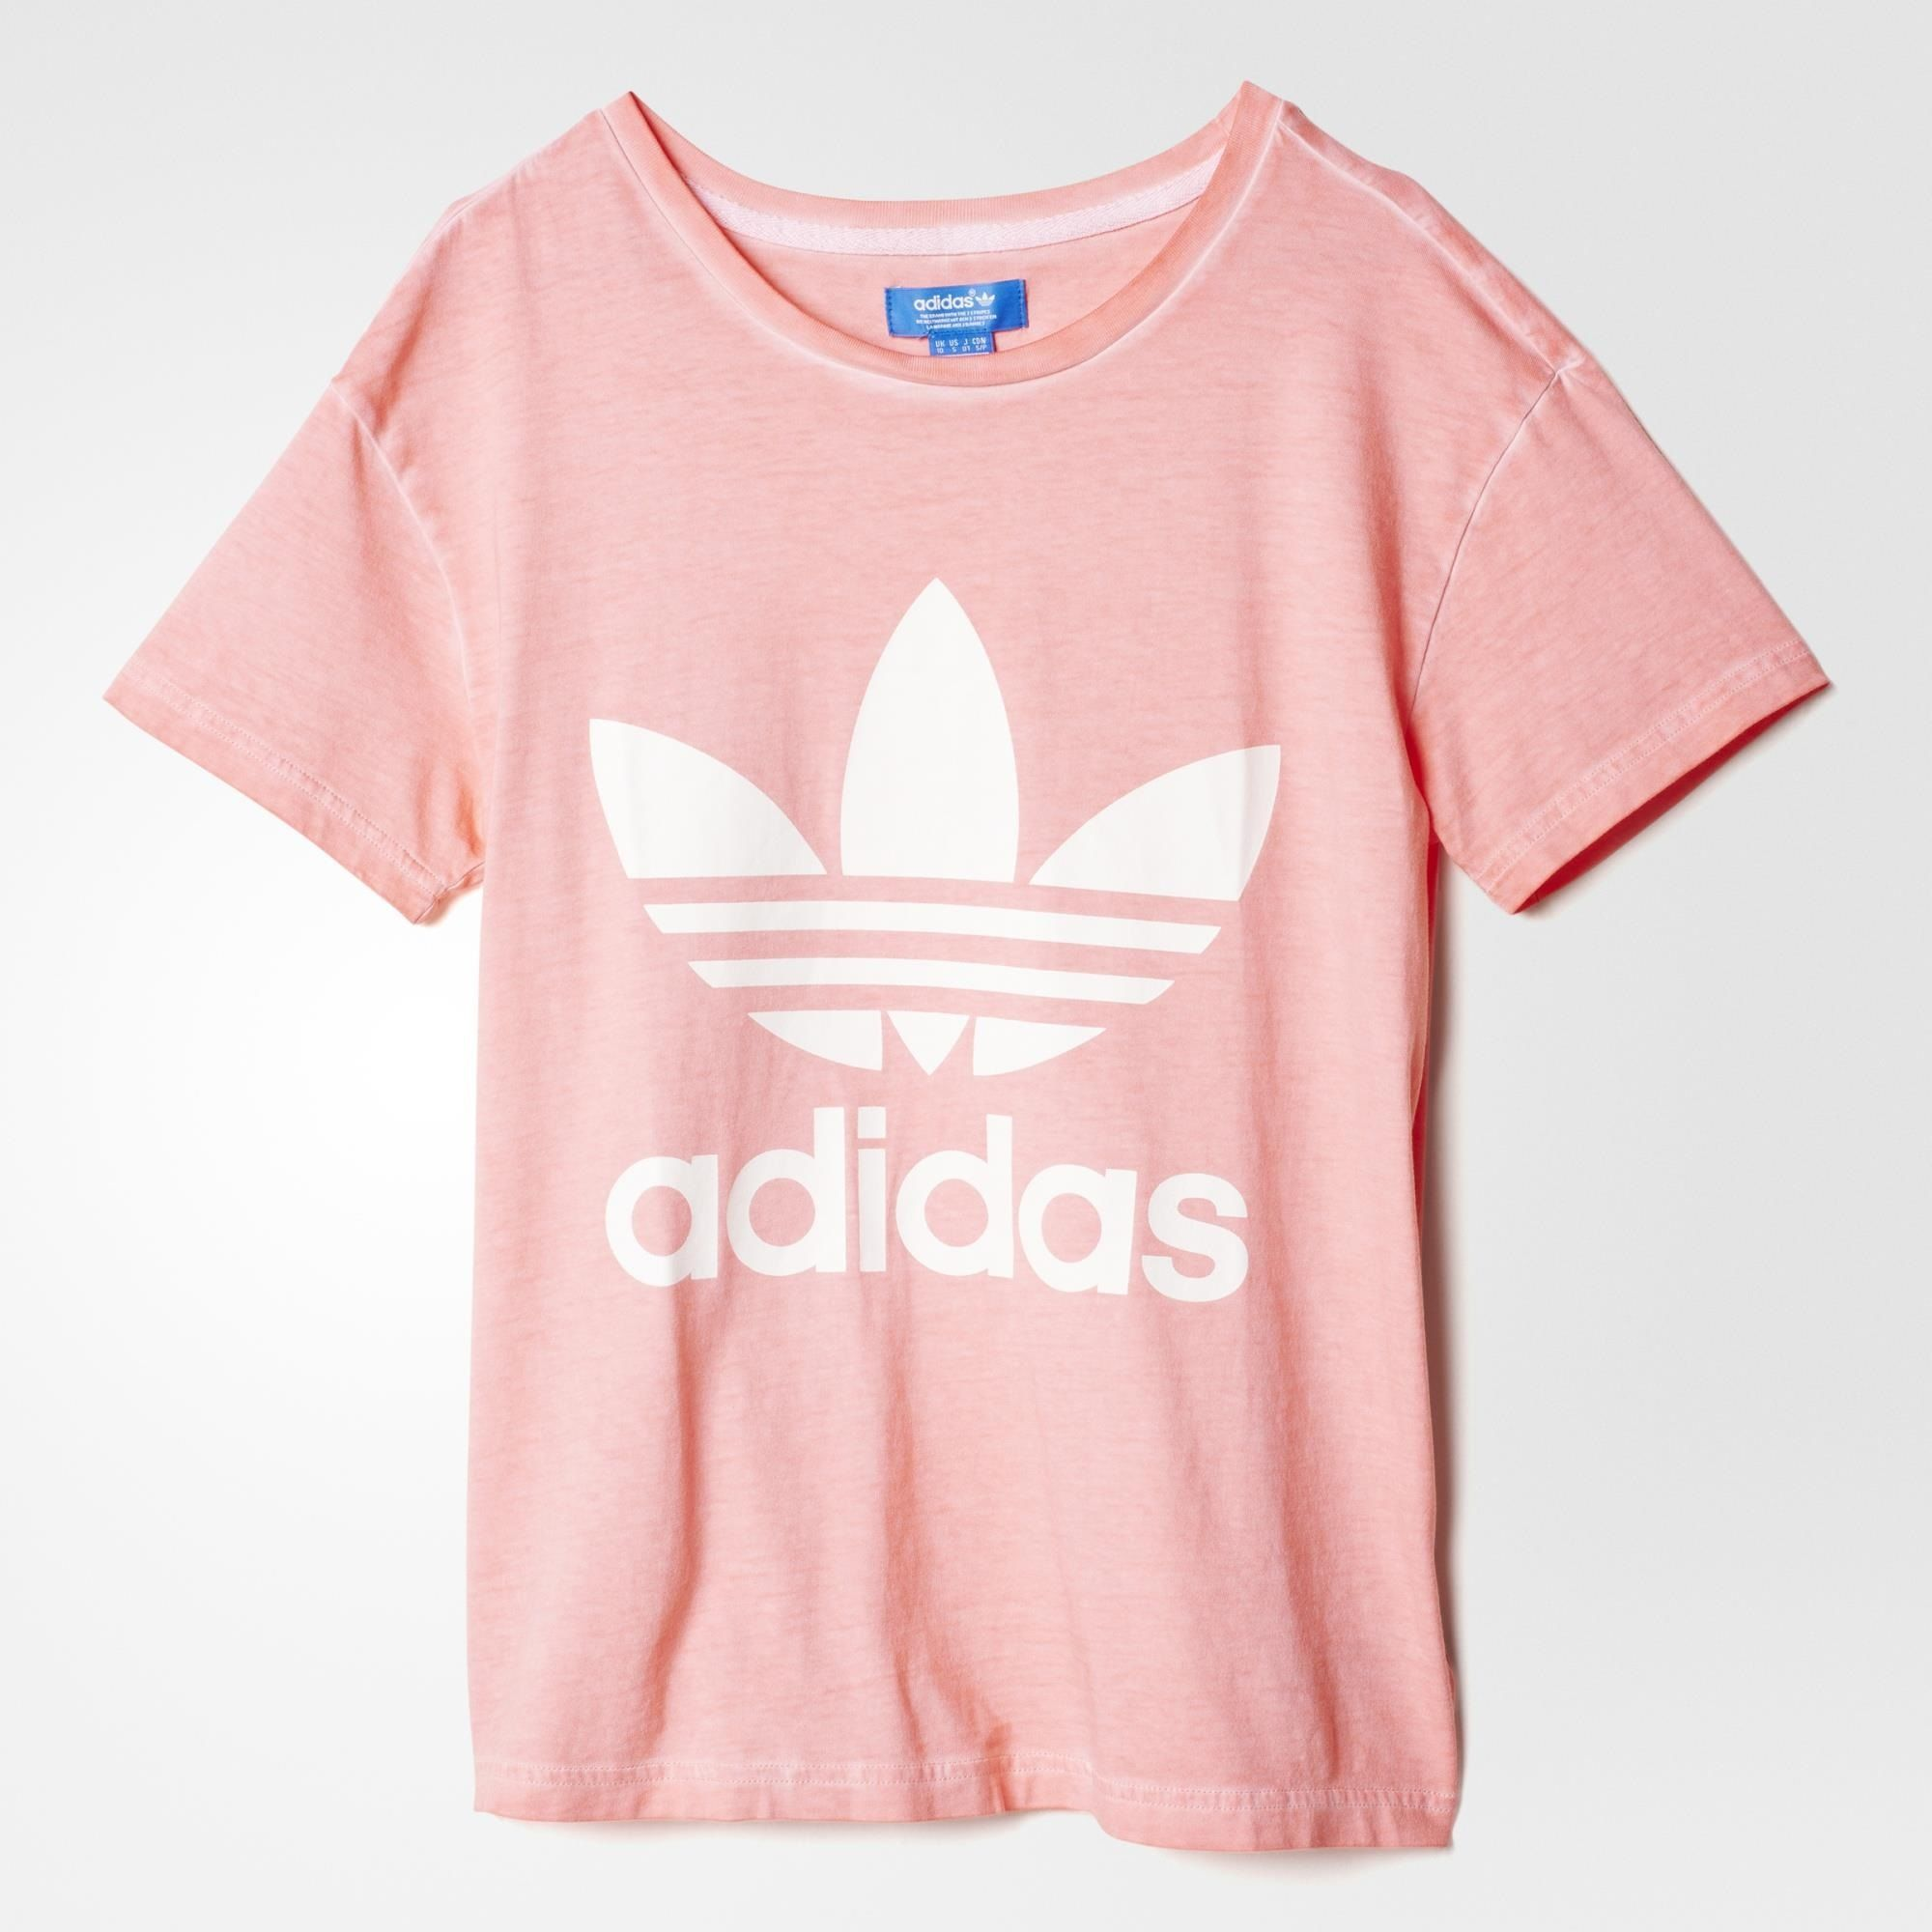 94594fc4f12ff adidas Premium Essentials Washed T-Shirt - Peach Pink